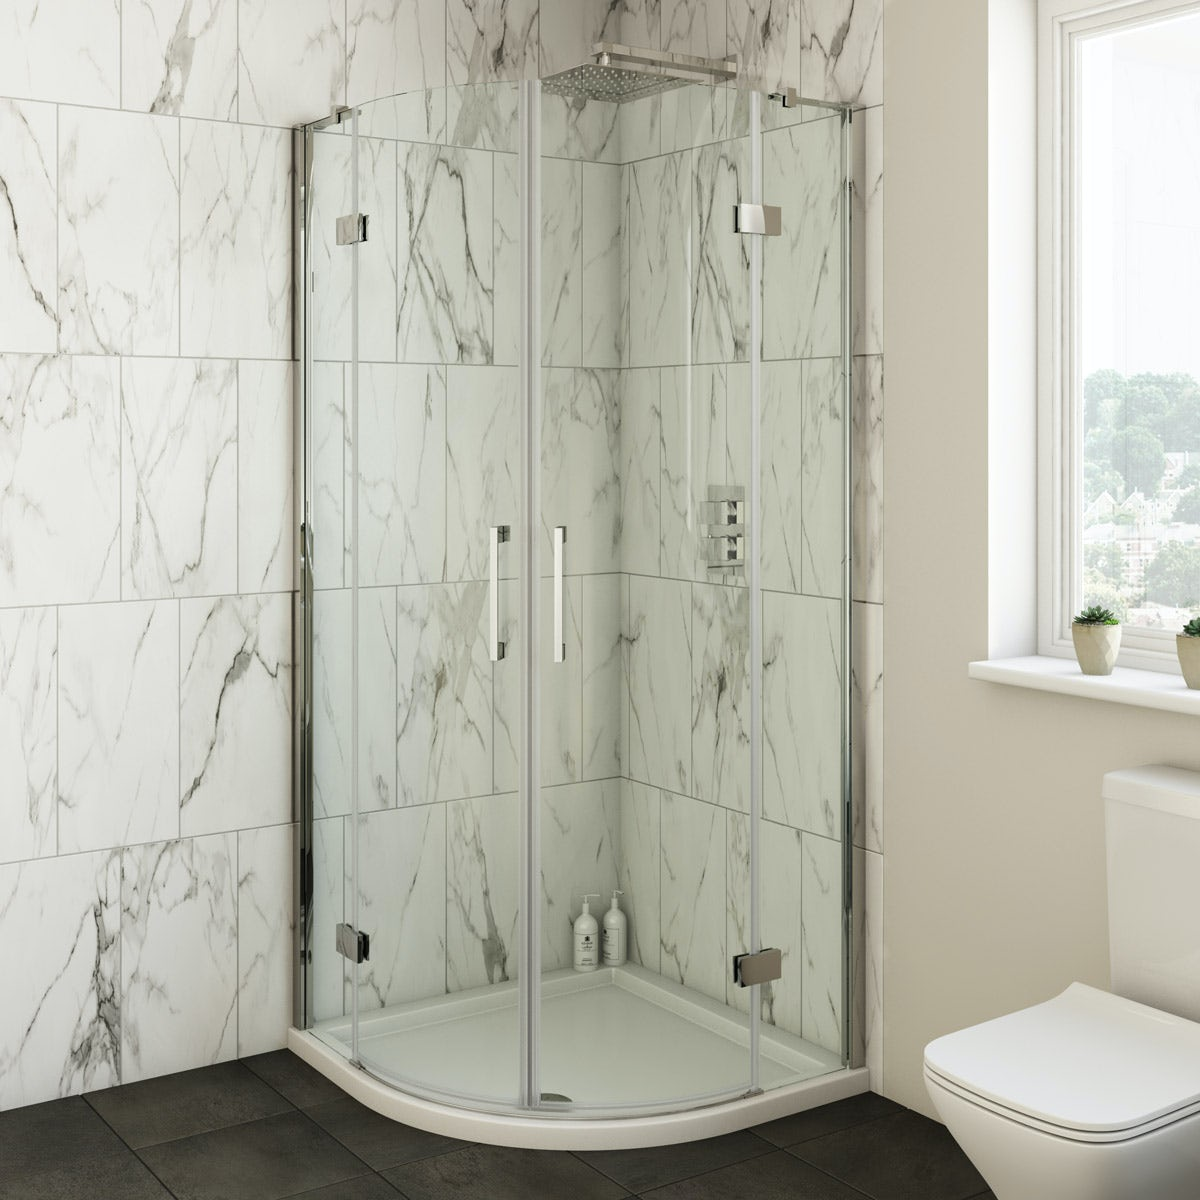 Mode Cooper premium 8mm easy clean quadrant shower enclosure 900 x 900